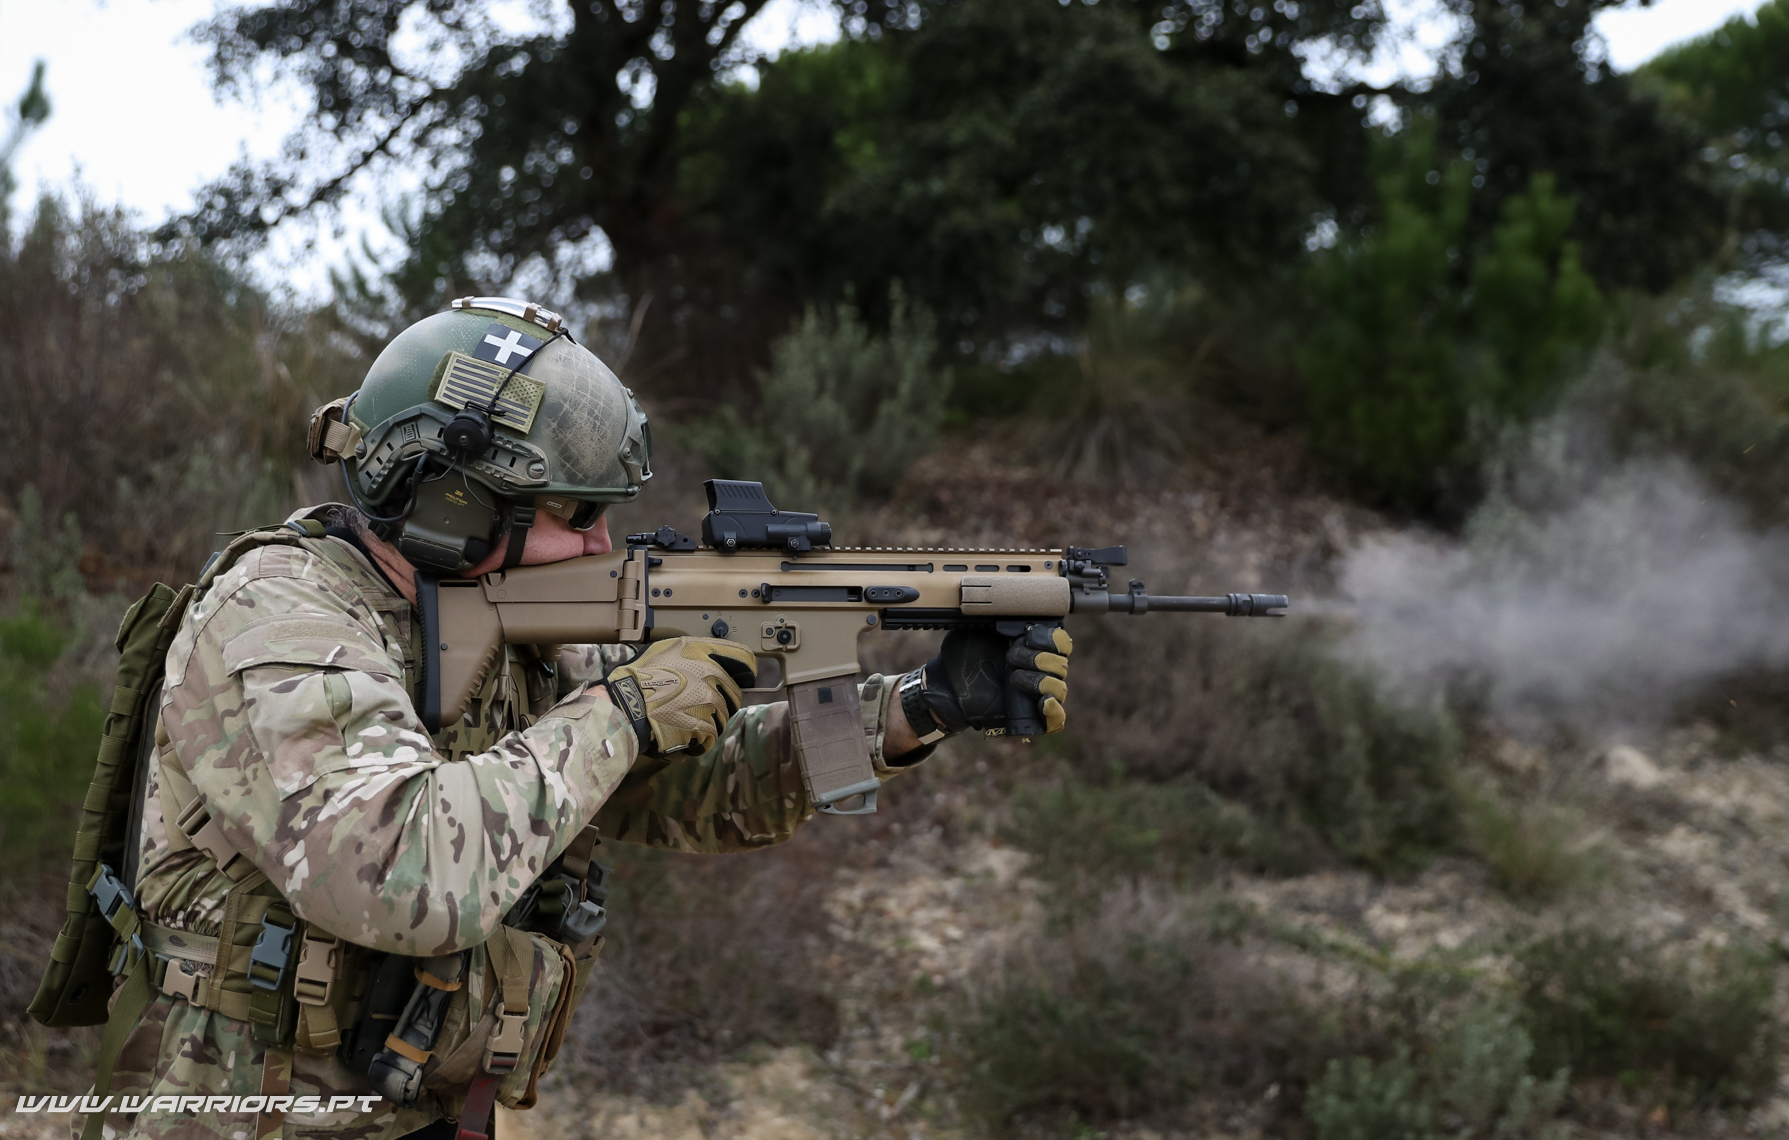 Substituição da G3. Rangers Special Forces FN SCAR-L 5,56x45mm New assault rifle for the Portuguese Army